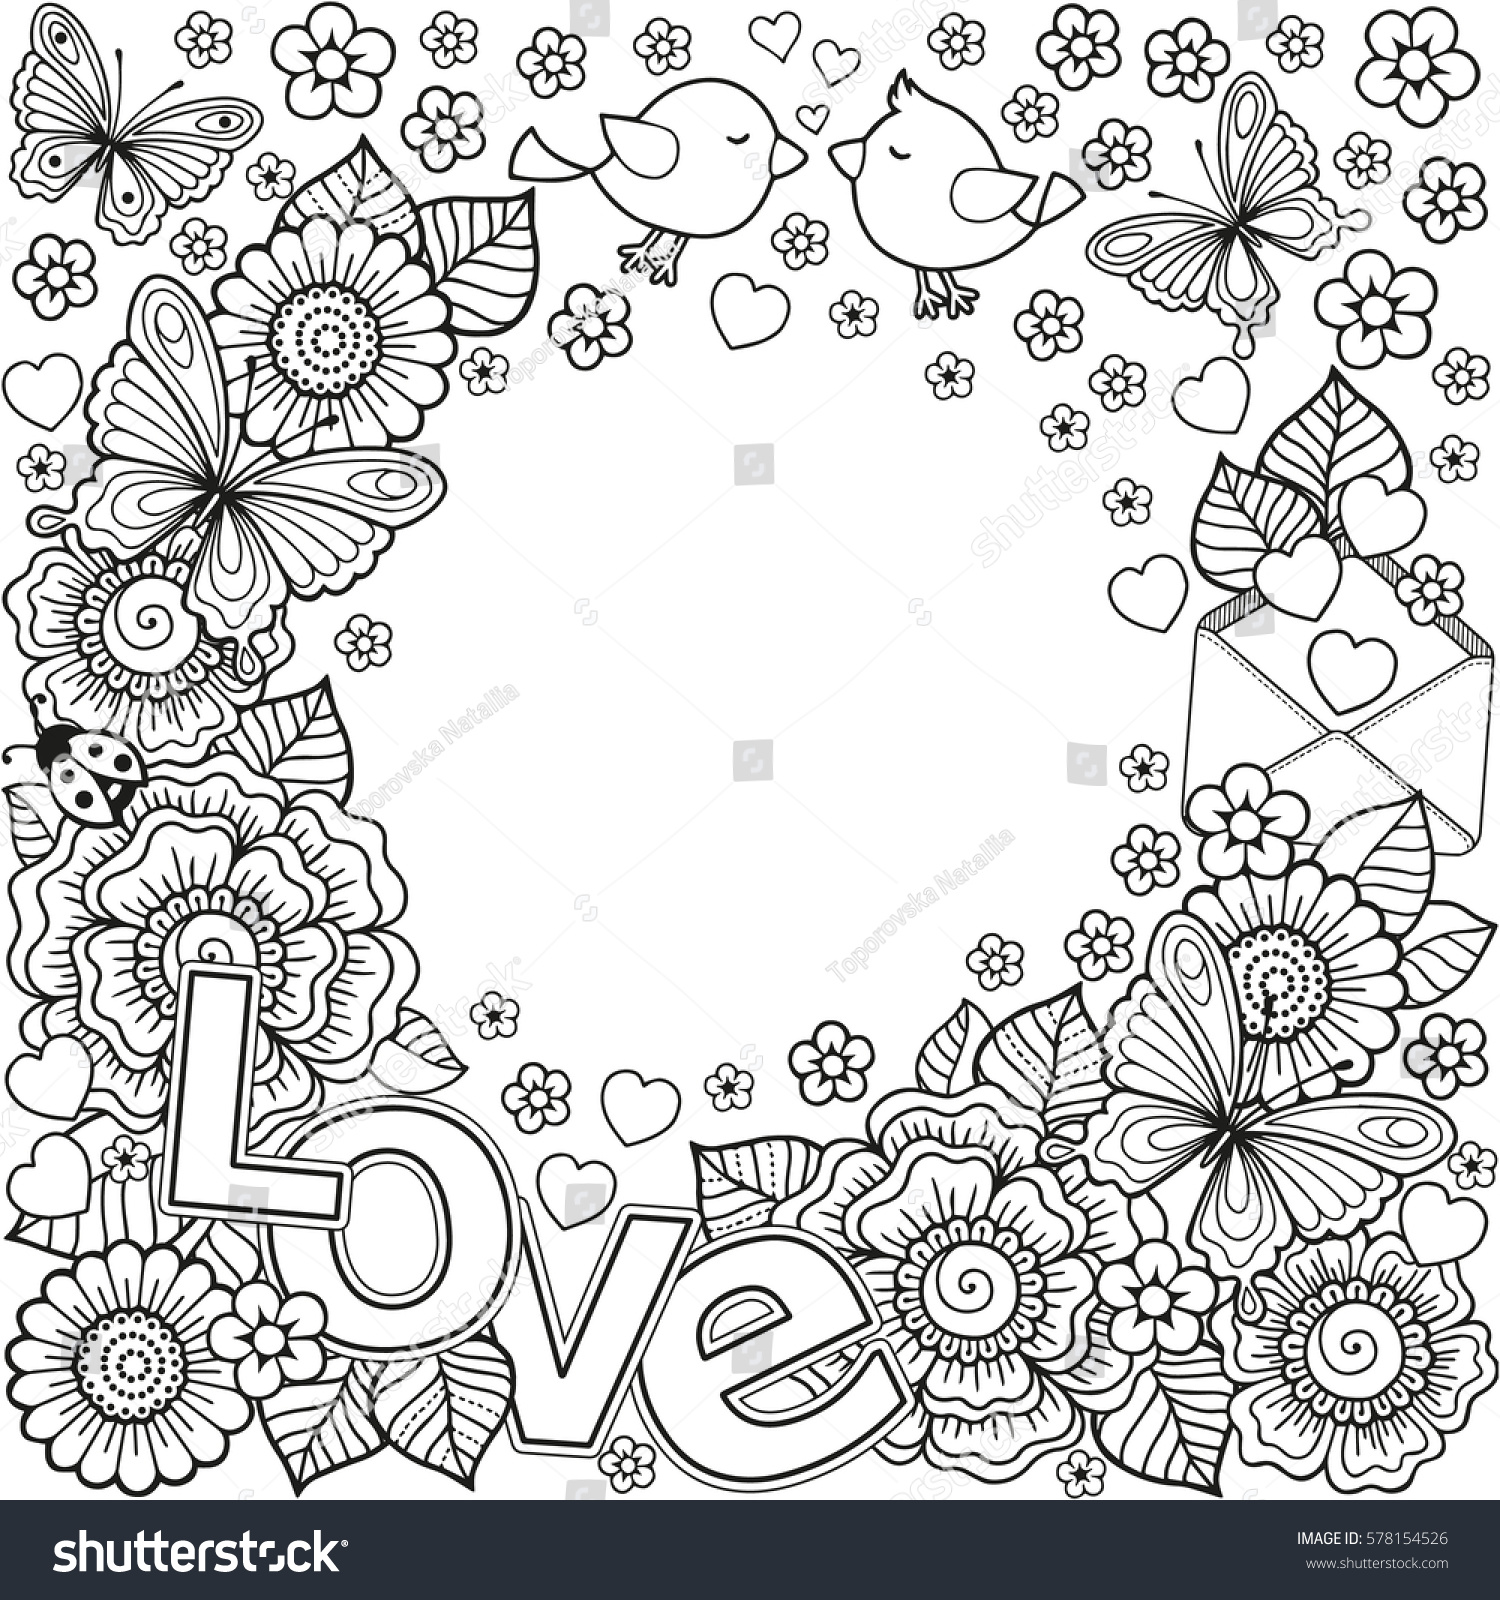 abstract coloring book for adult design for wedding invitations and valentines - Abstract Coloring Books